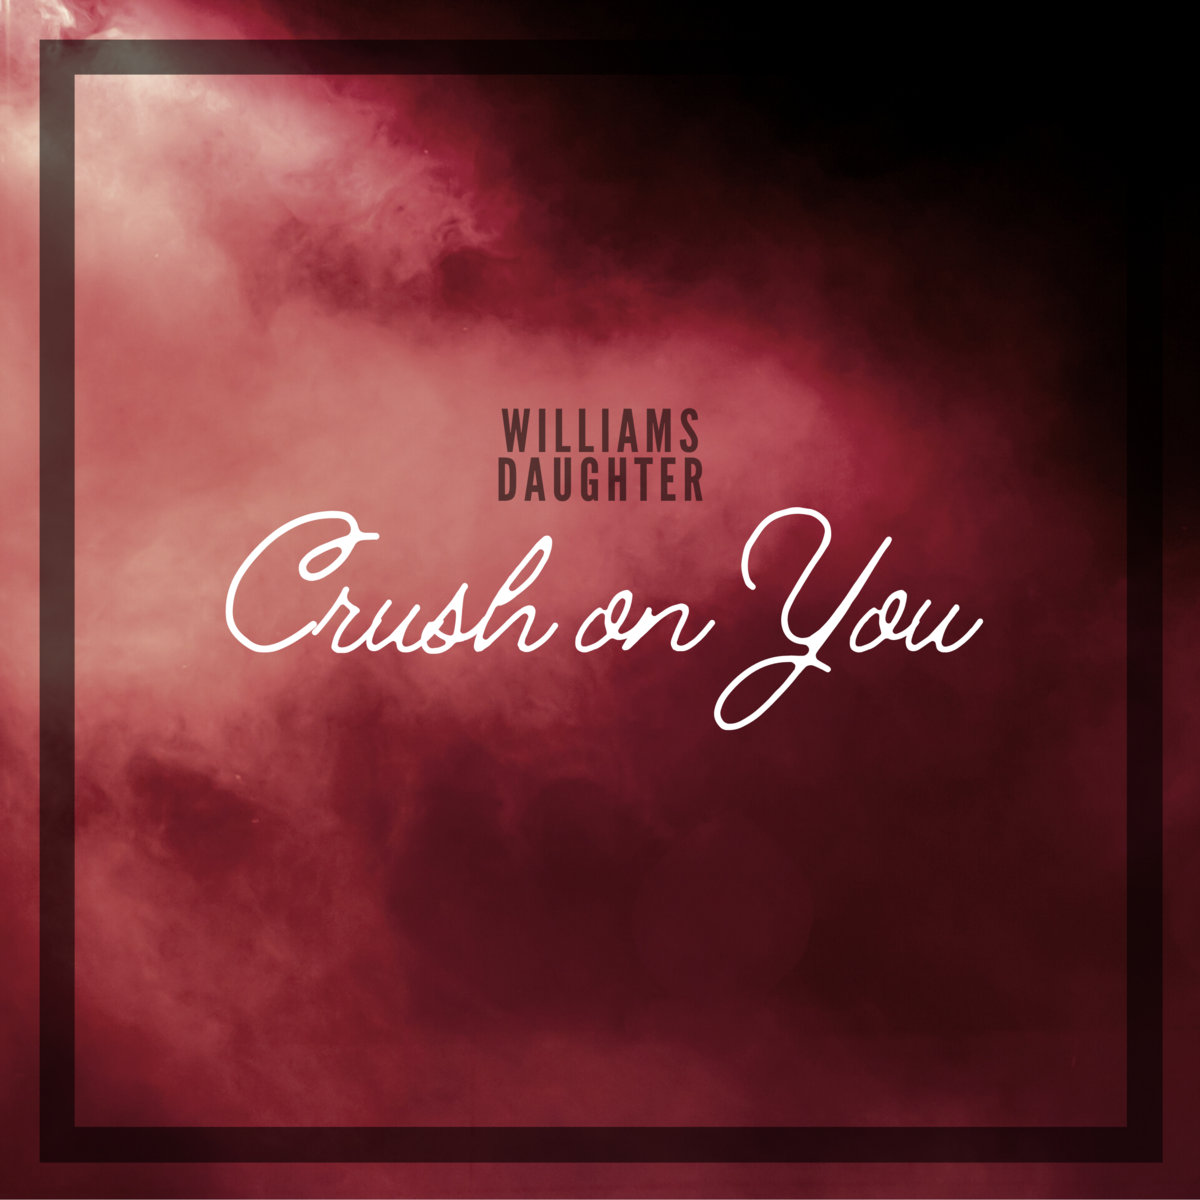 Crush on You by Williams Daughter